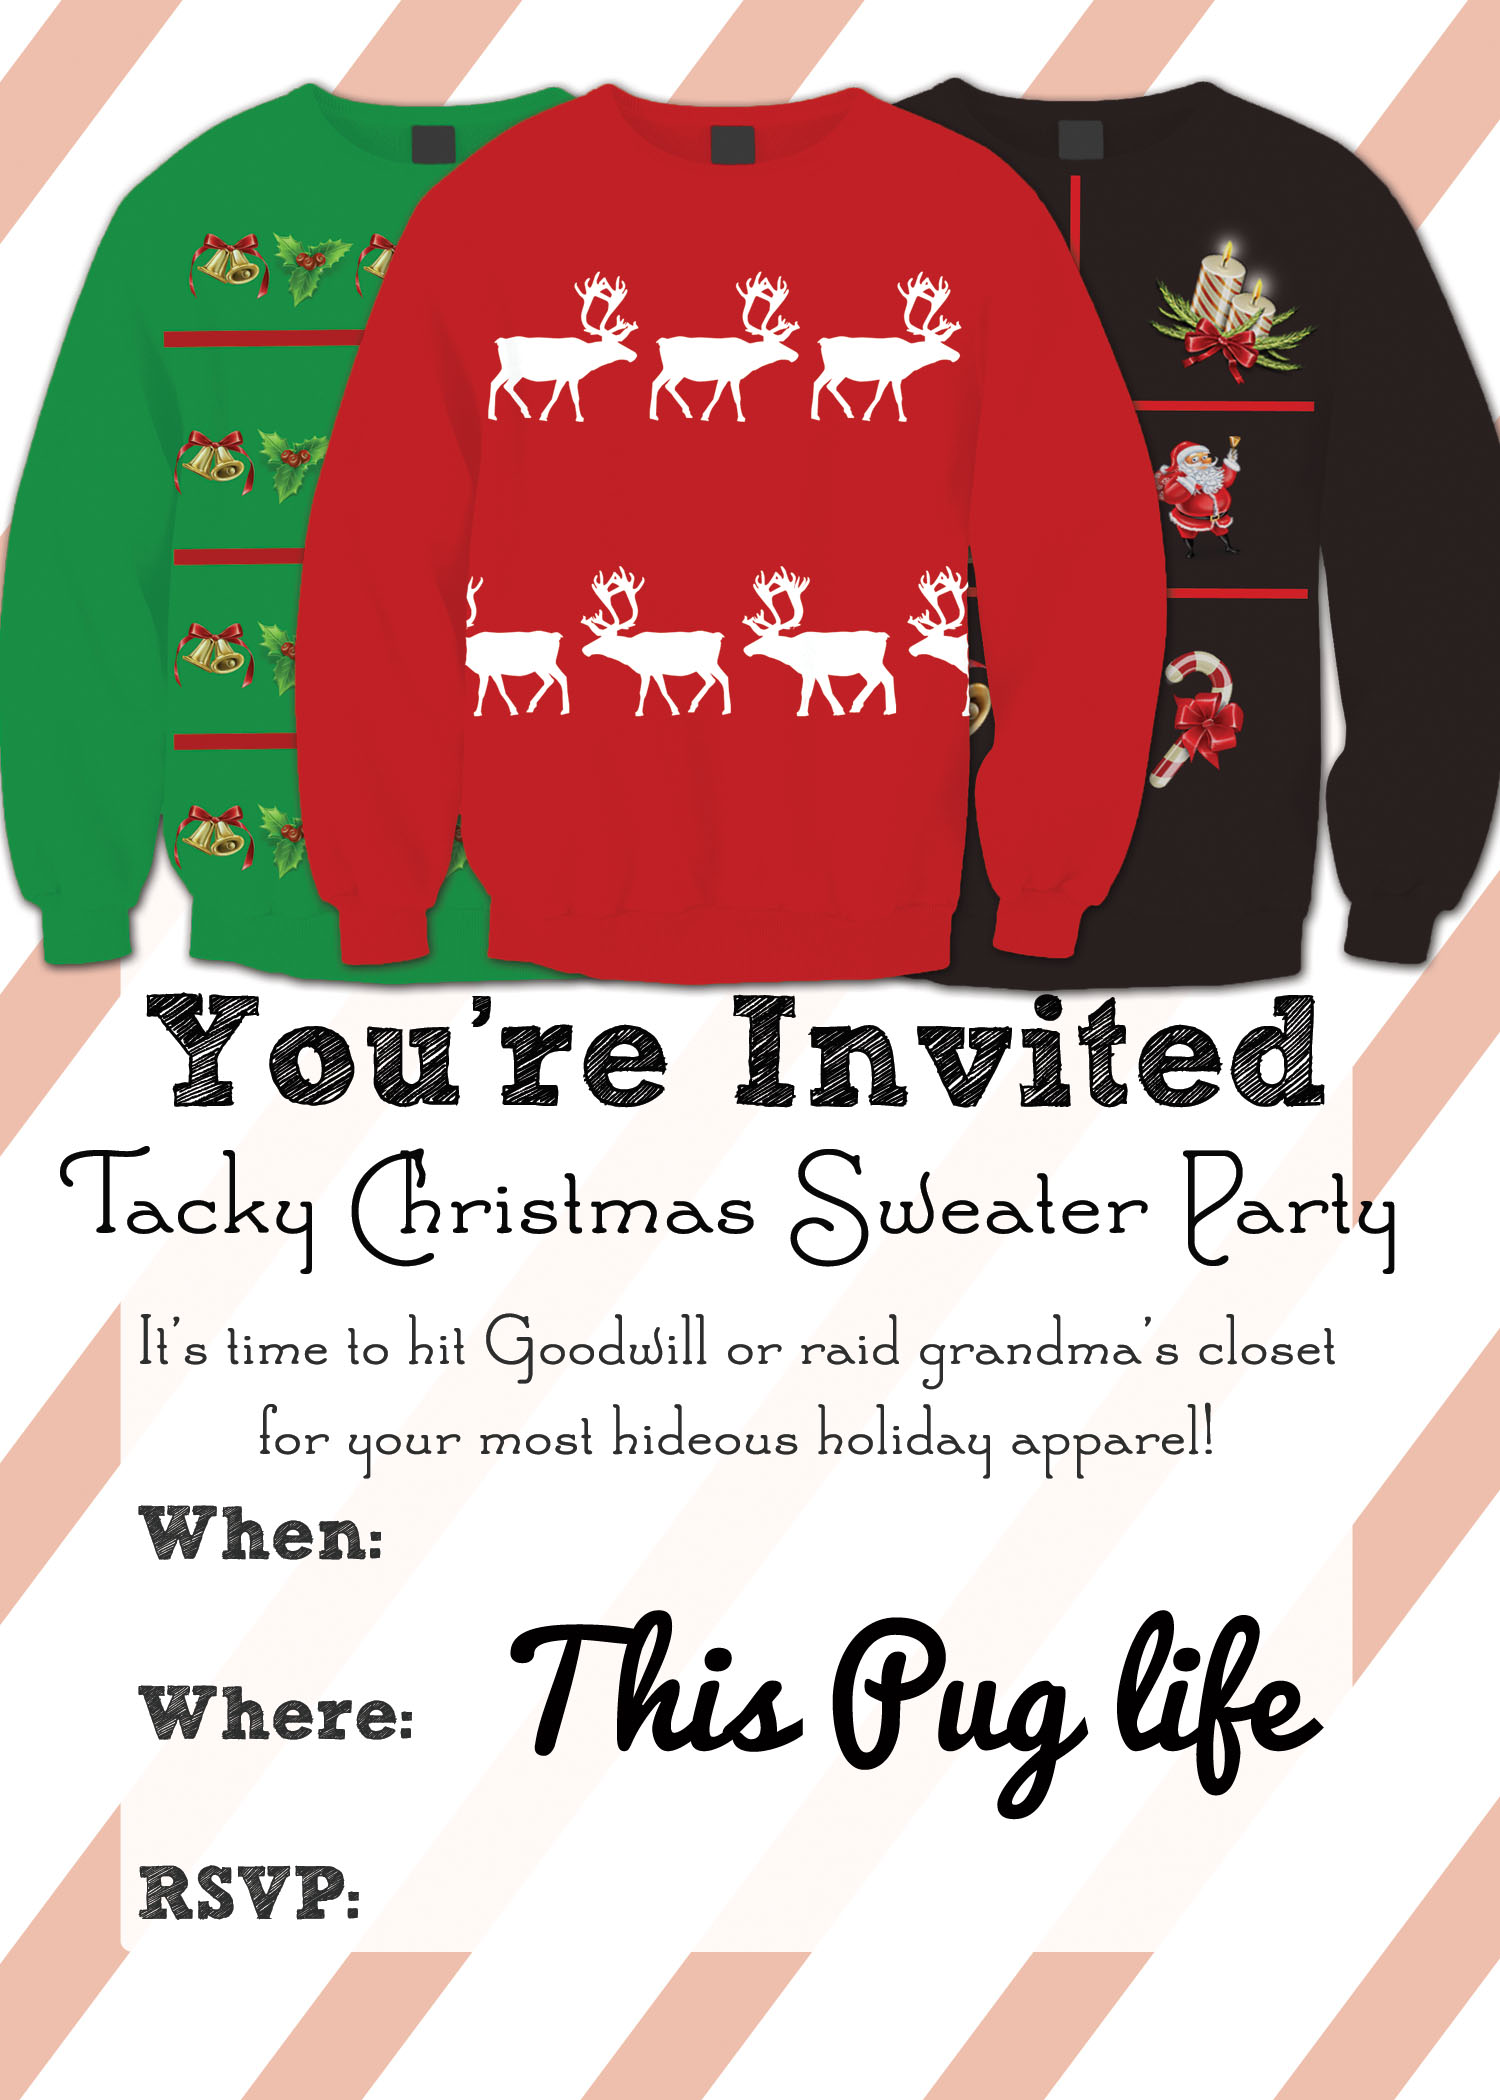 tacky christmas sweater party invitations printable this ugly tacky christmas sweater party printable invitations